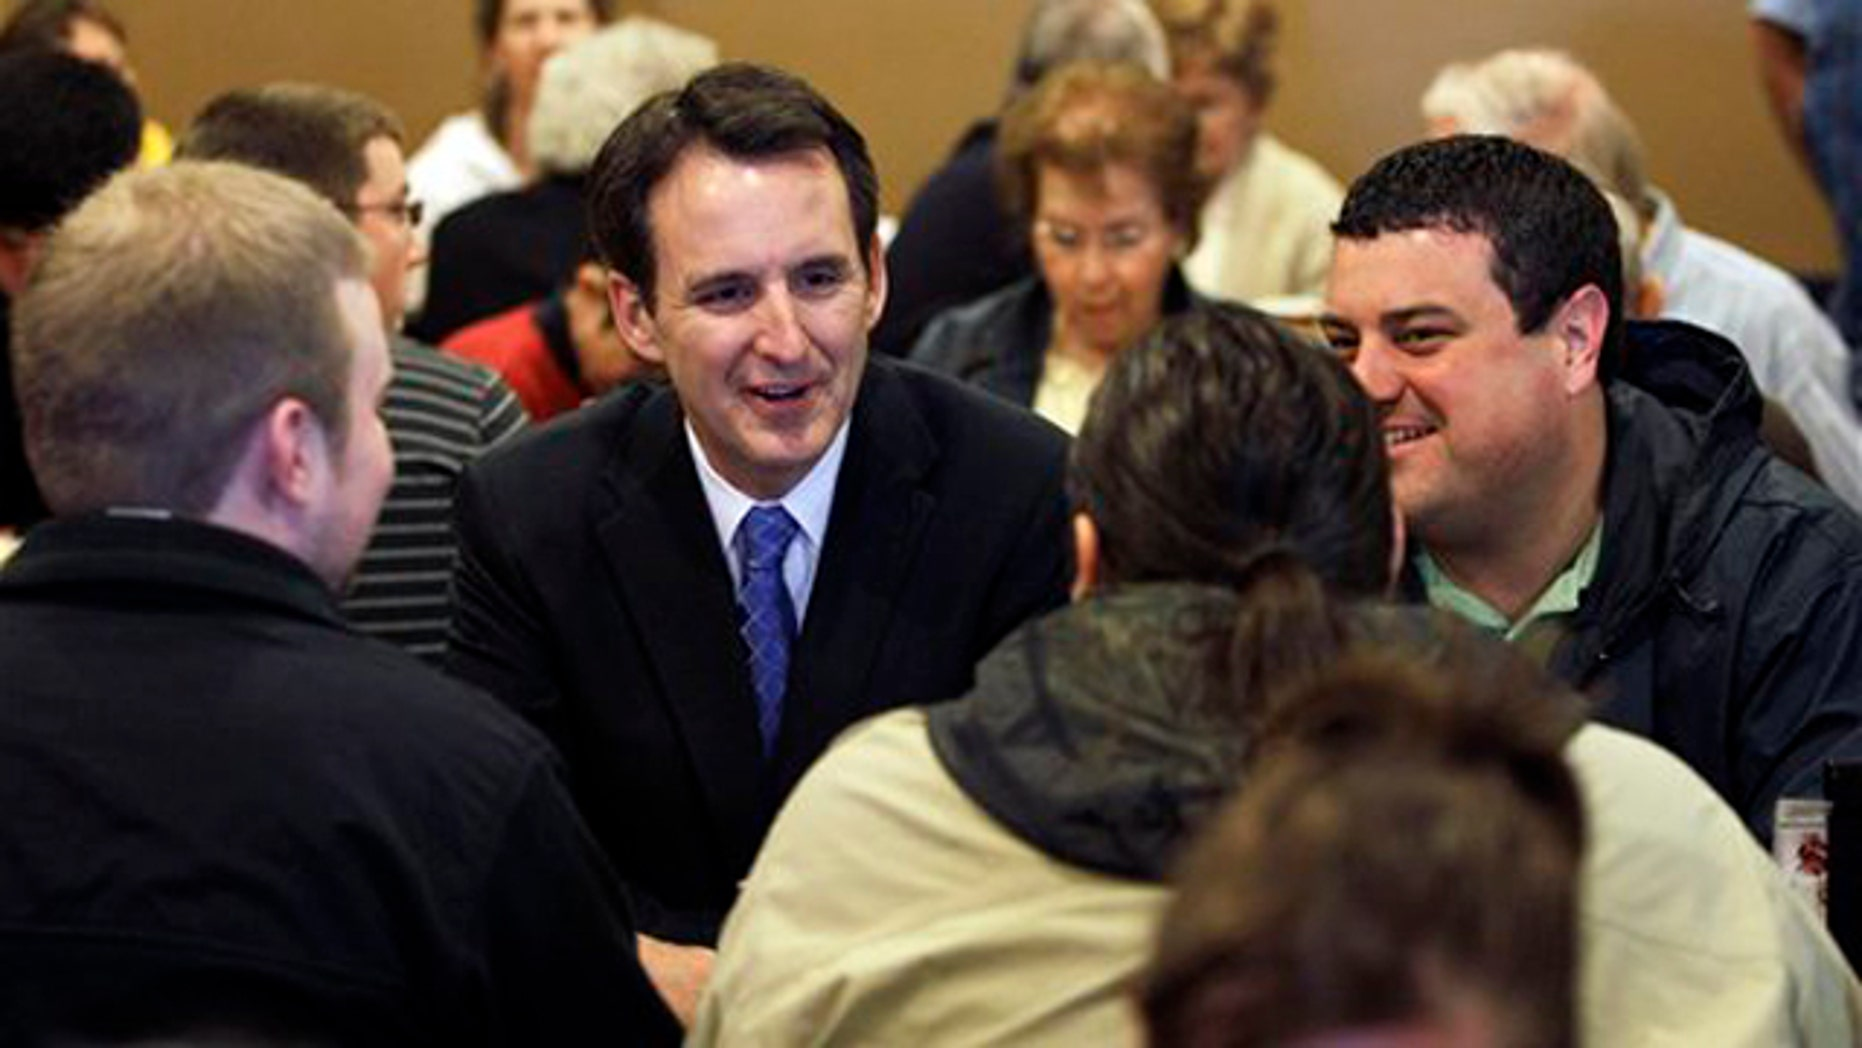 Former Minnesota Gov. Tim Pawlenty speaks with local residents during a breakfast meeting at a restaurant May 3 in Ames, Iowa.